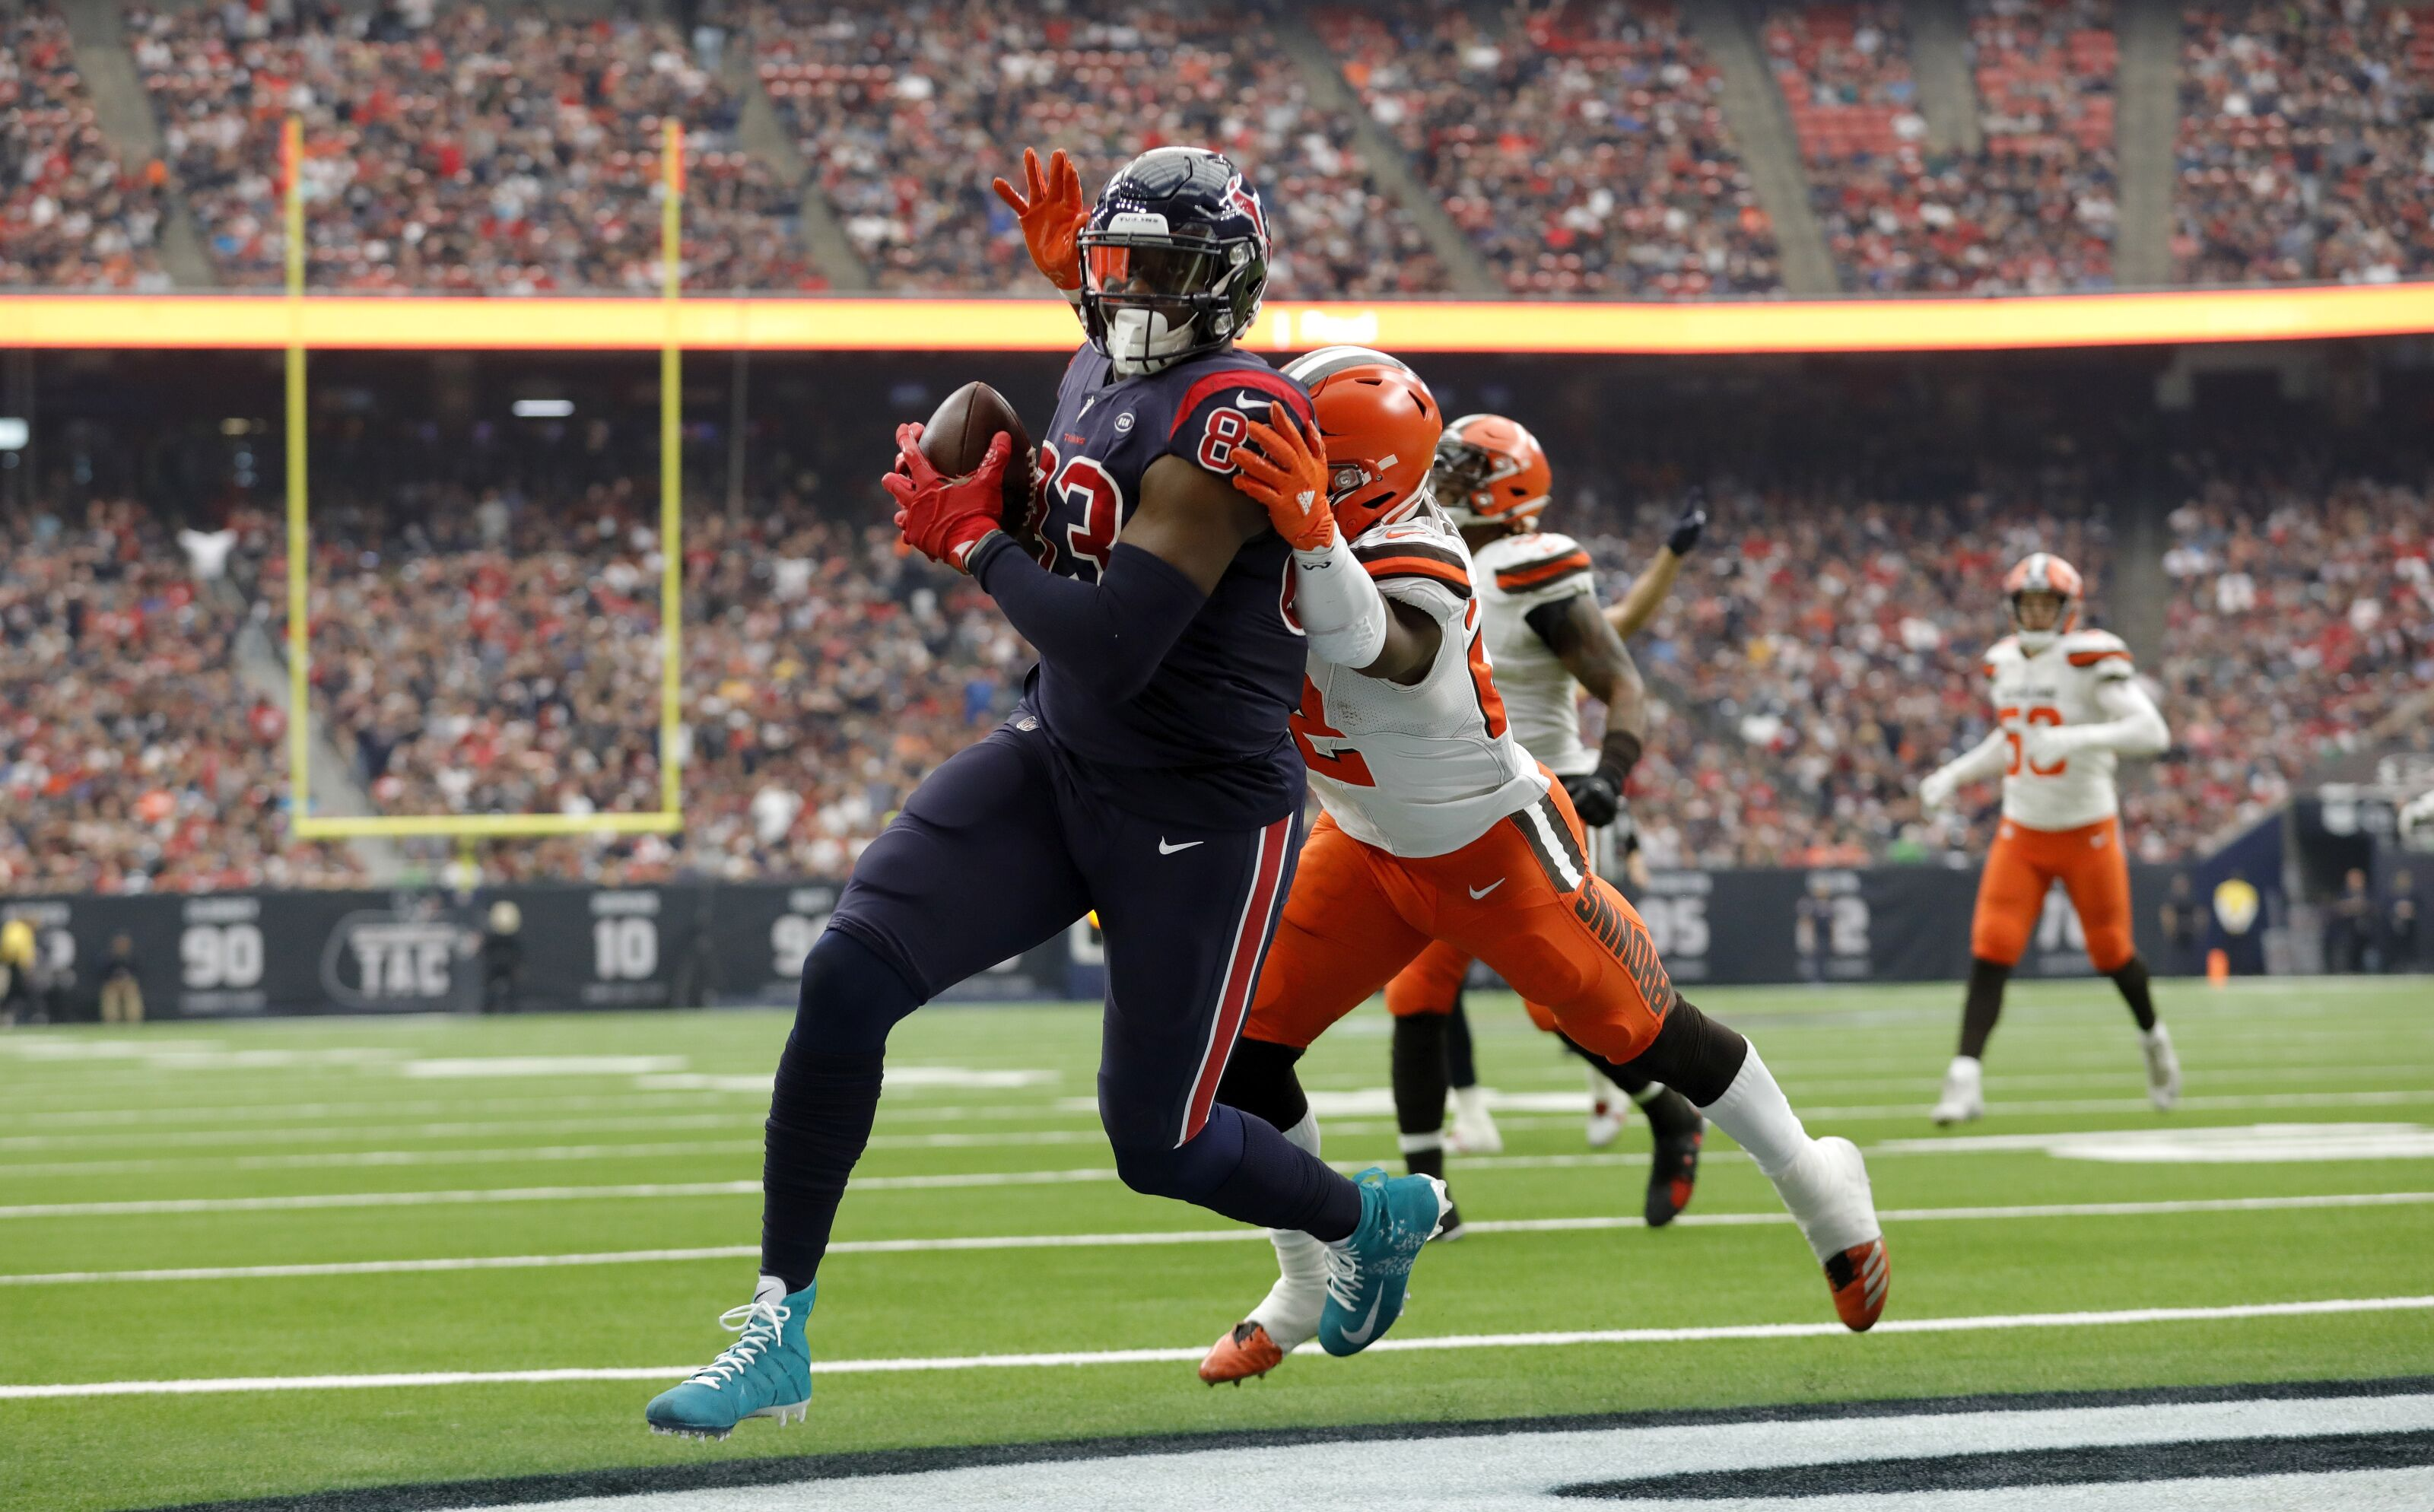 Houston Texans Weekly Roundup: Fantasy football, rookies and contract talks